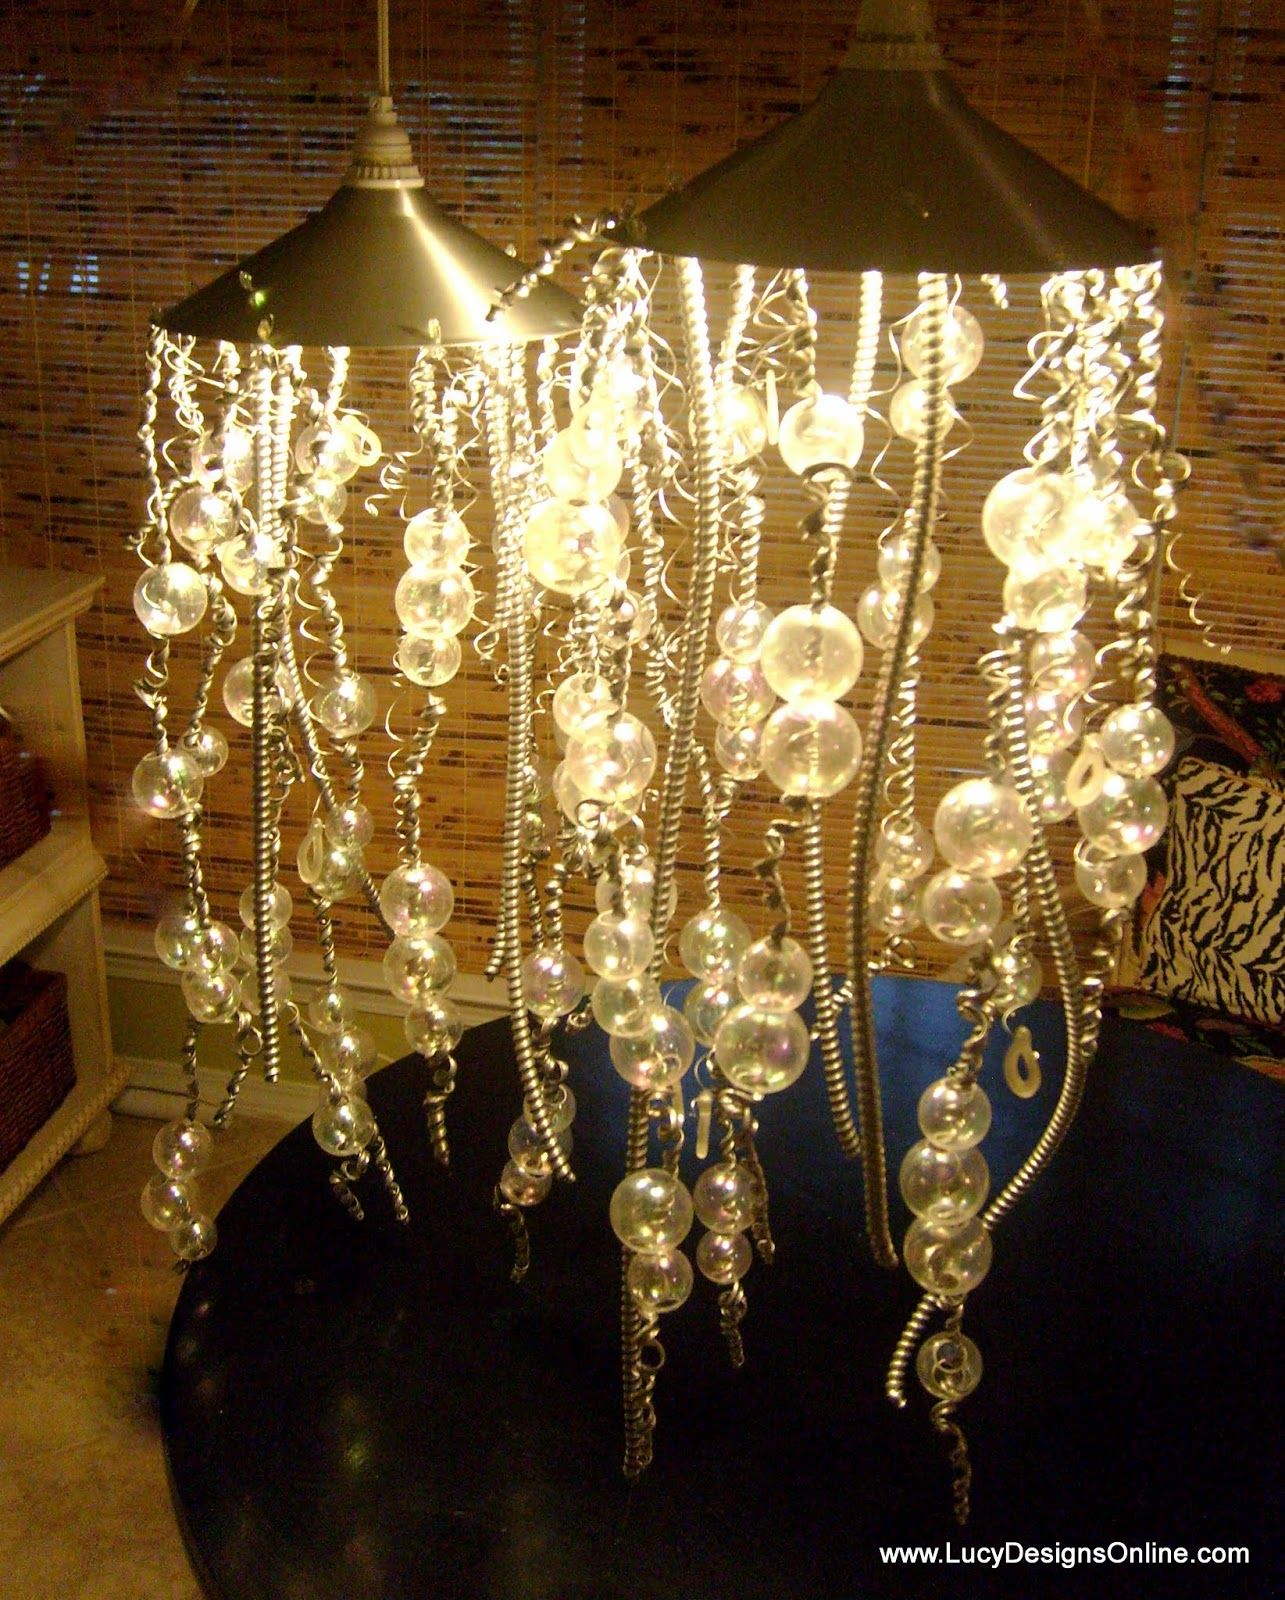 jellyfish lights Lamps and Chandeliers Pinterest